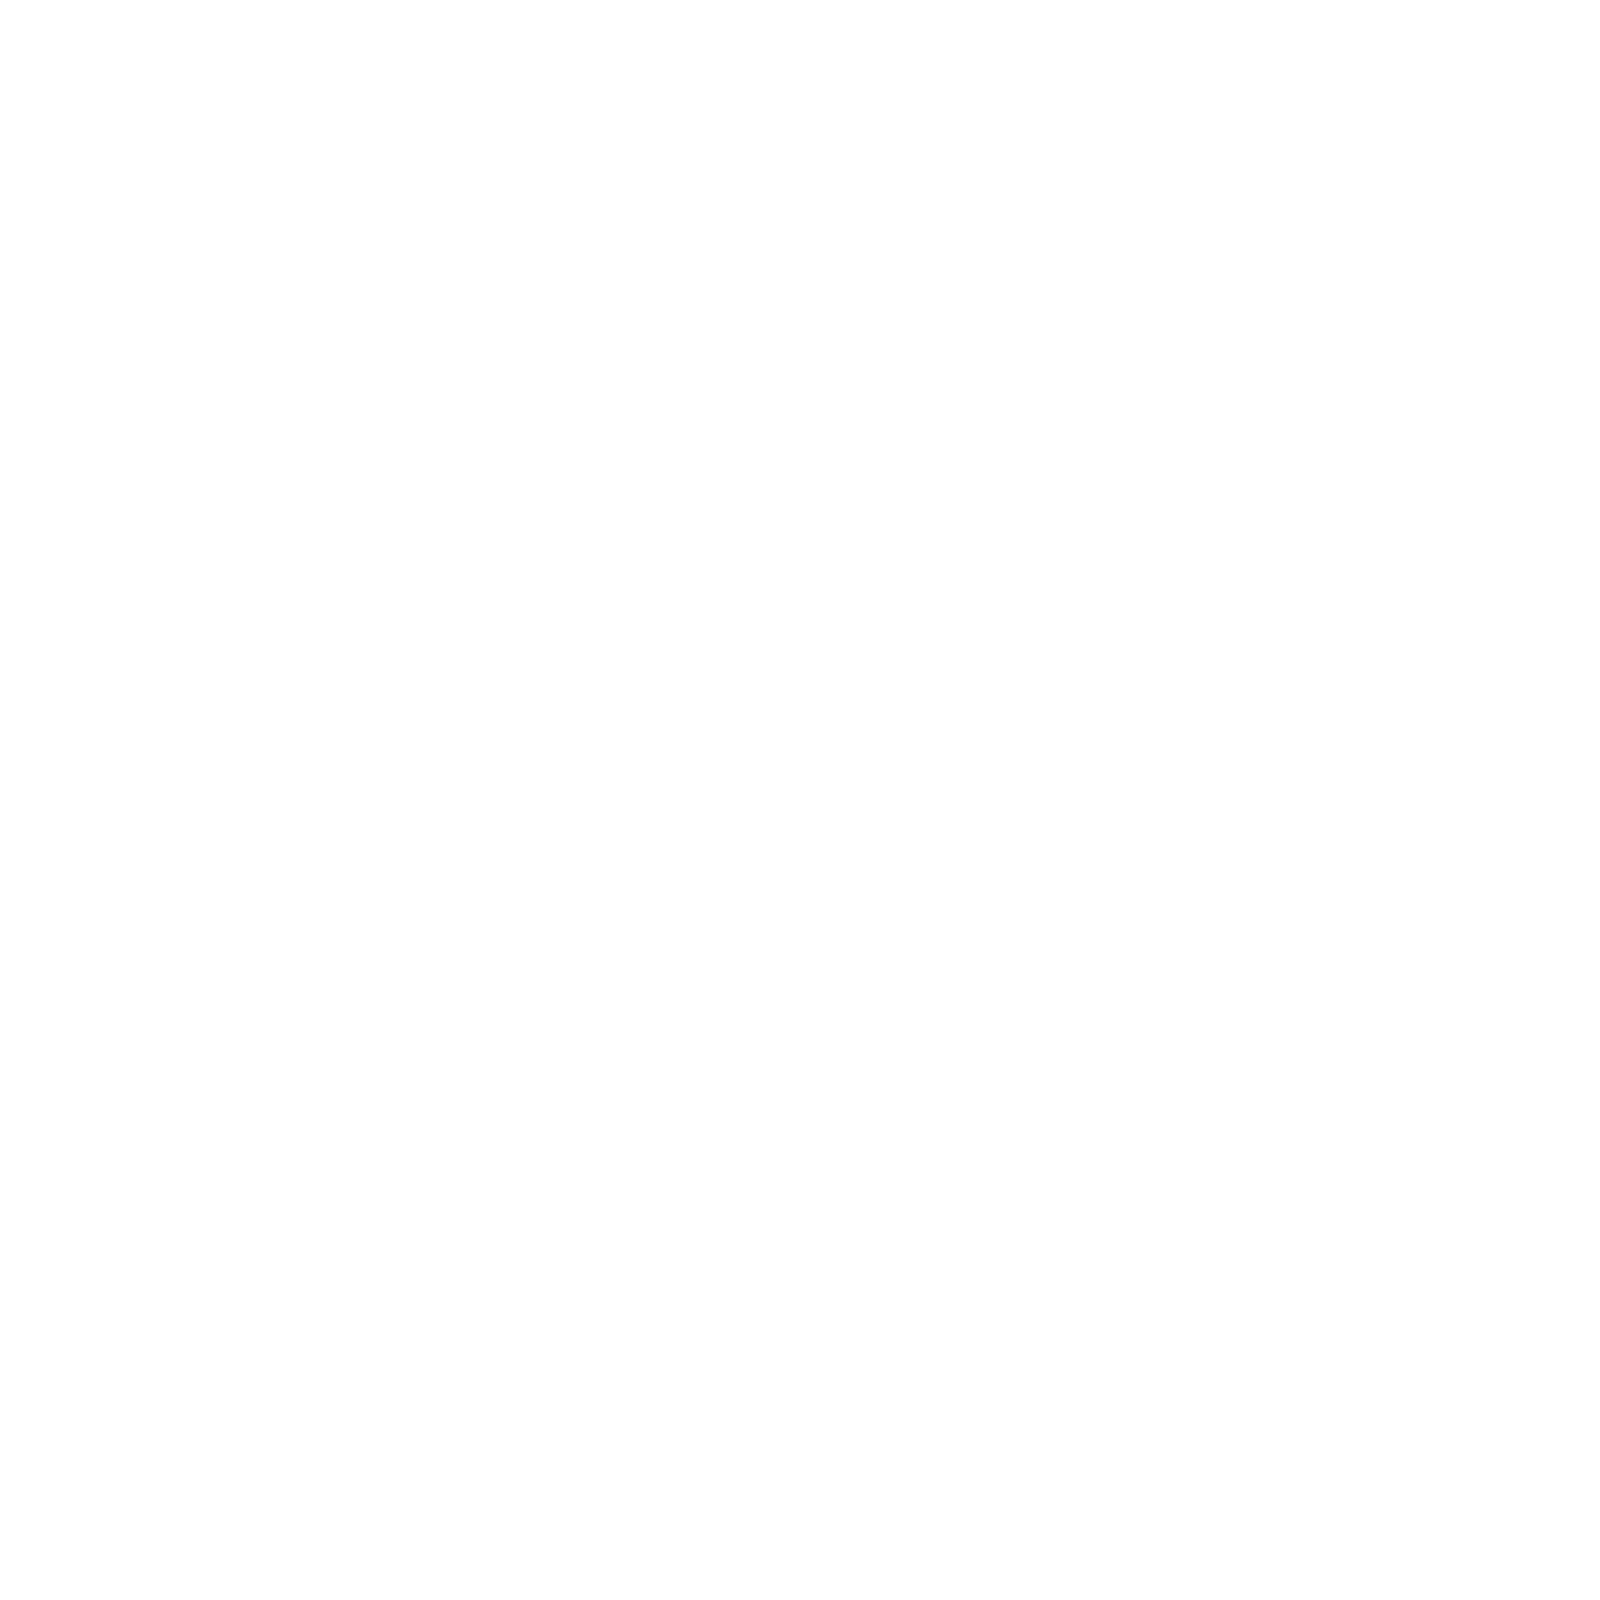 house-project-logo